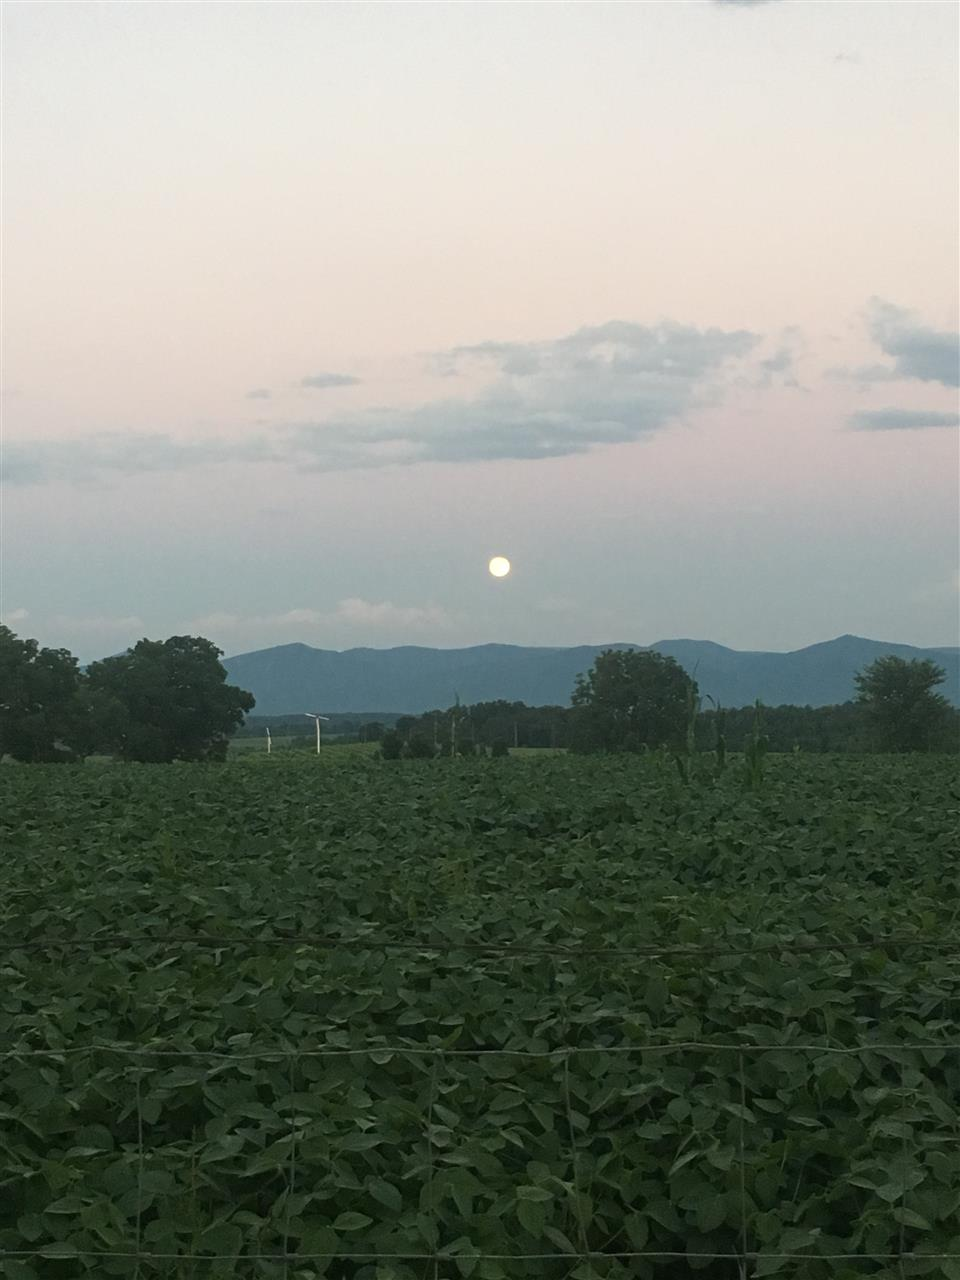 Moon peaking out over a crop field at sunset in Mt. Crawford, VA